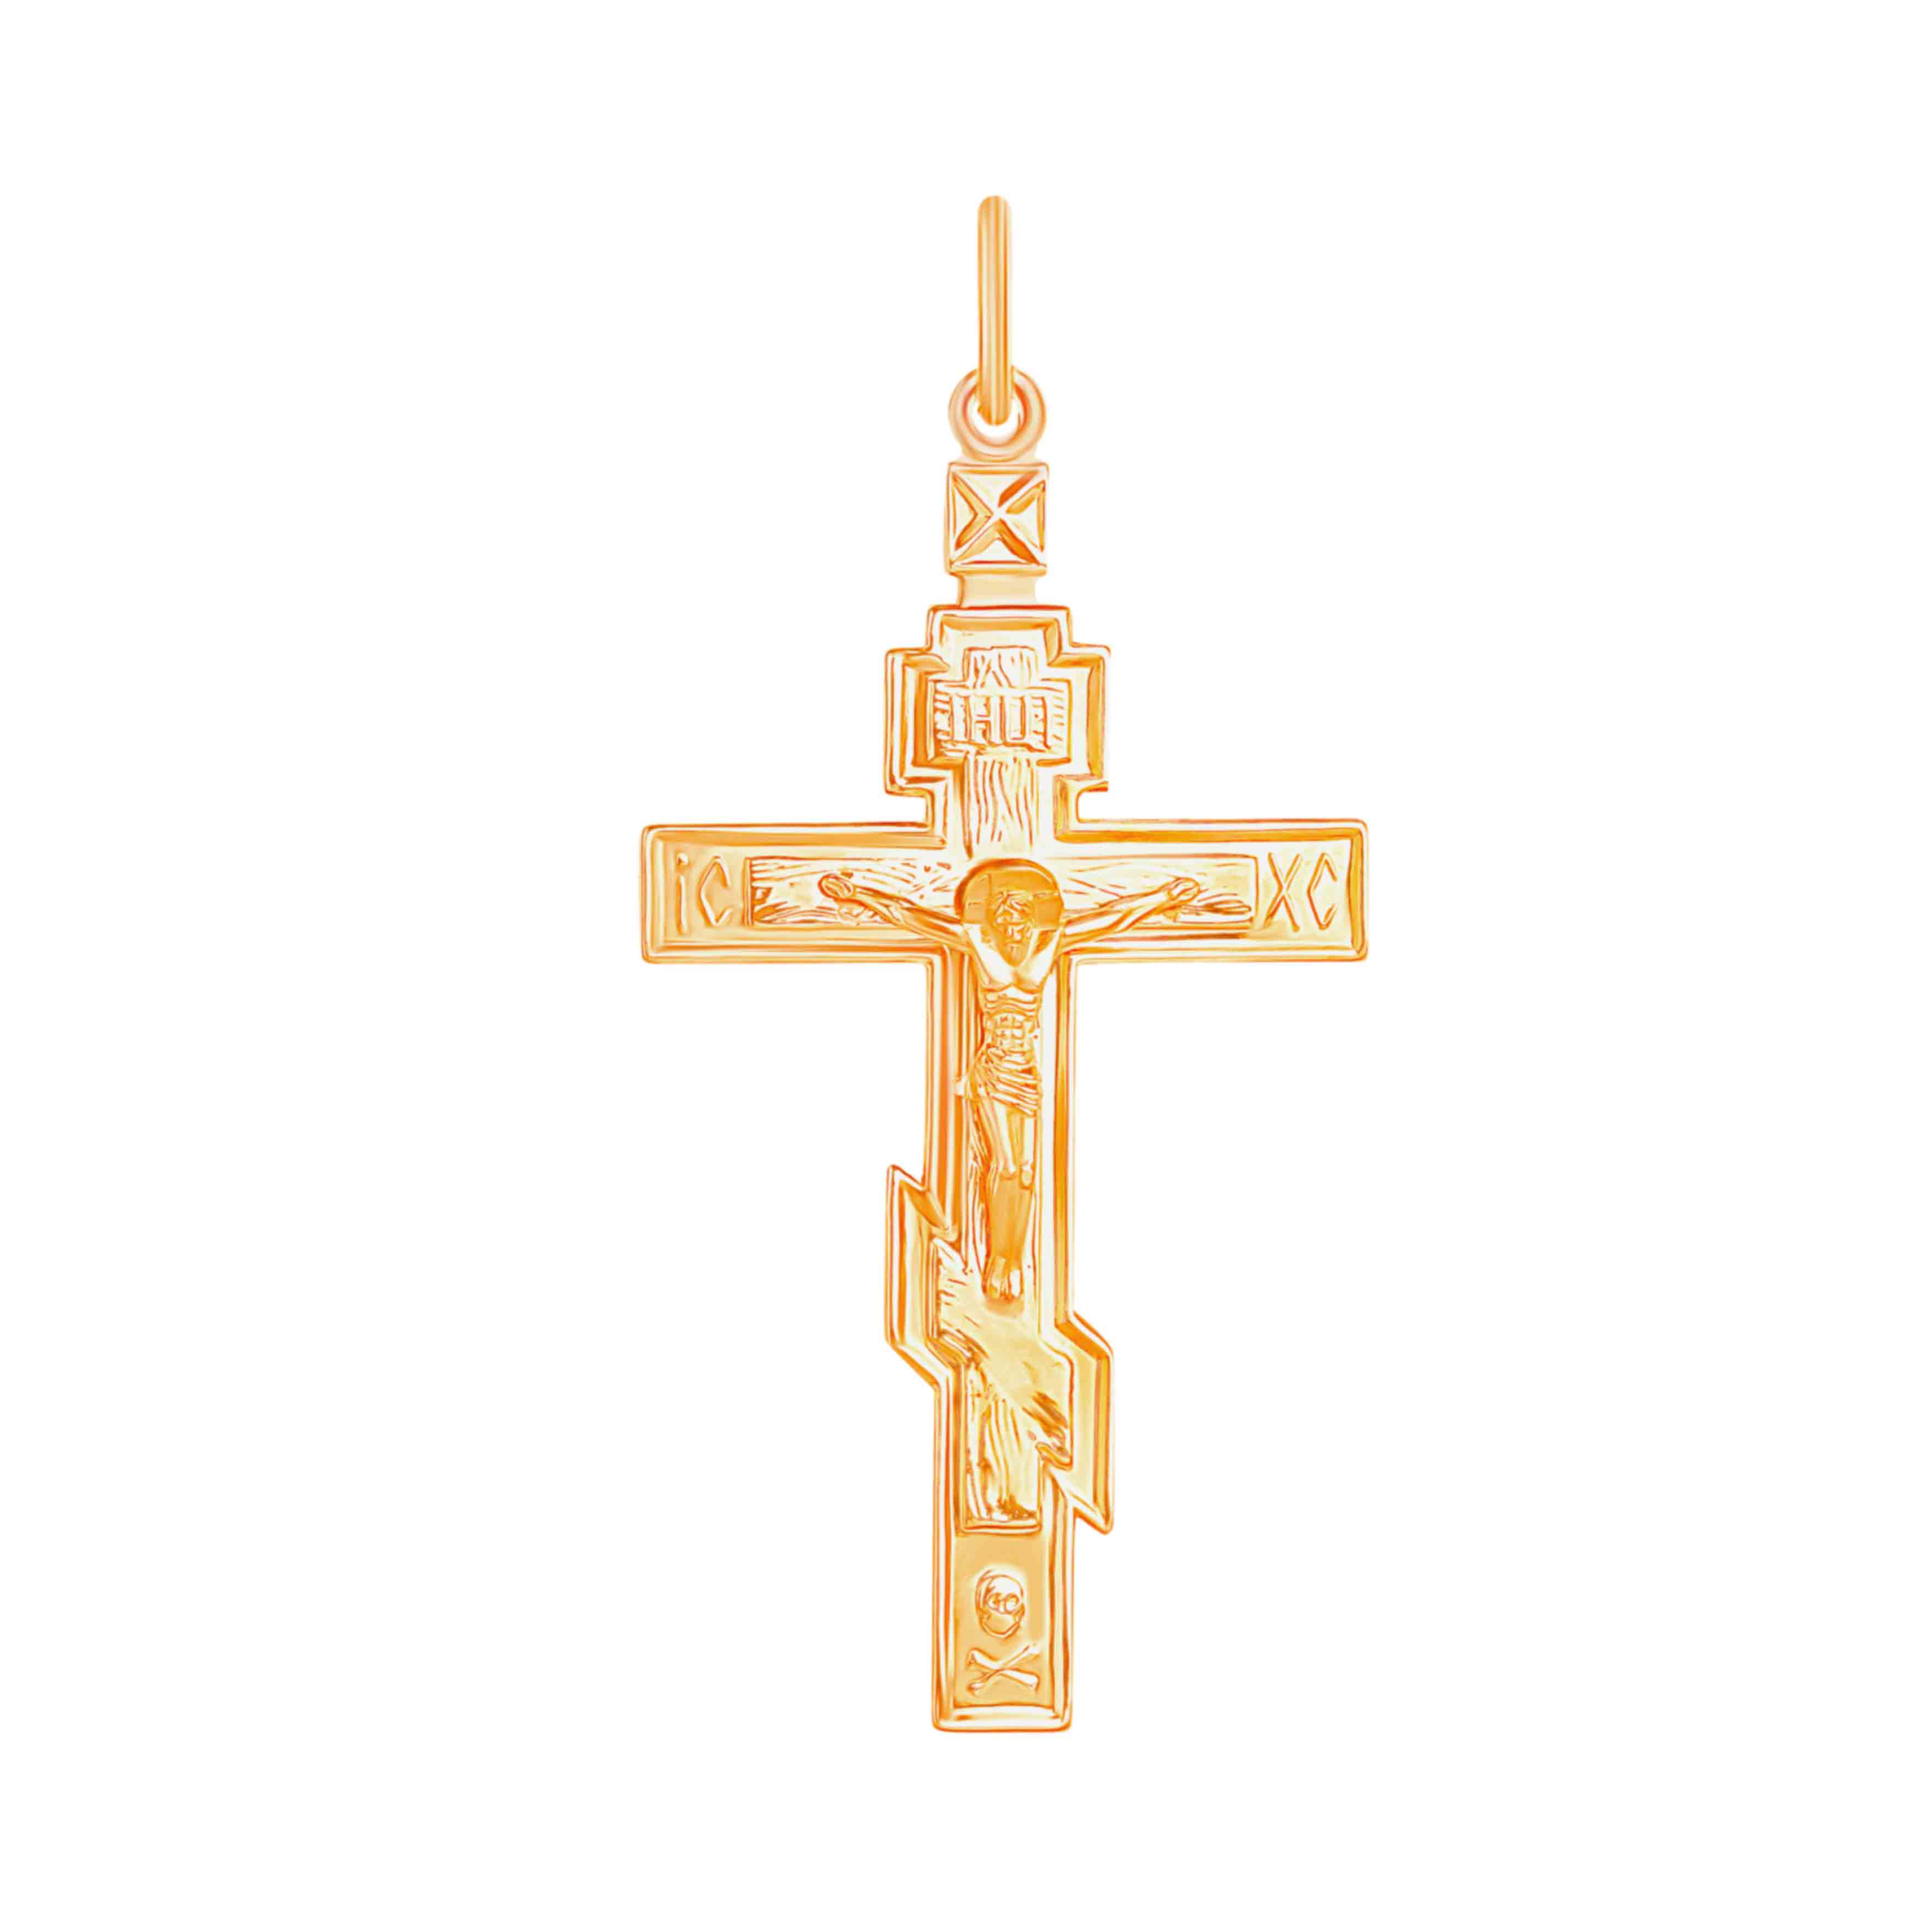 'The Star of Bethlehem' Orthodox Cross